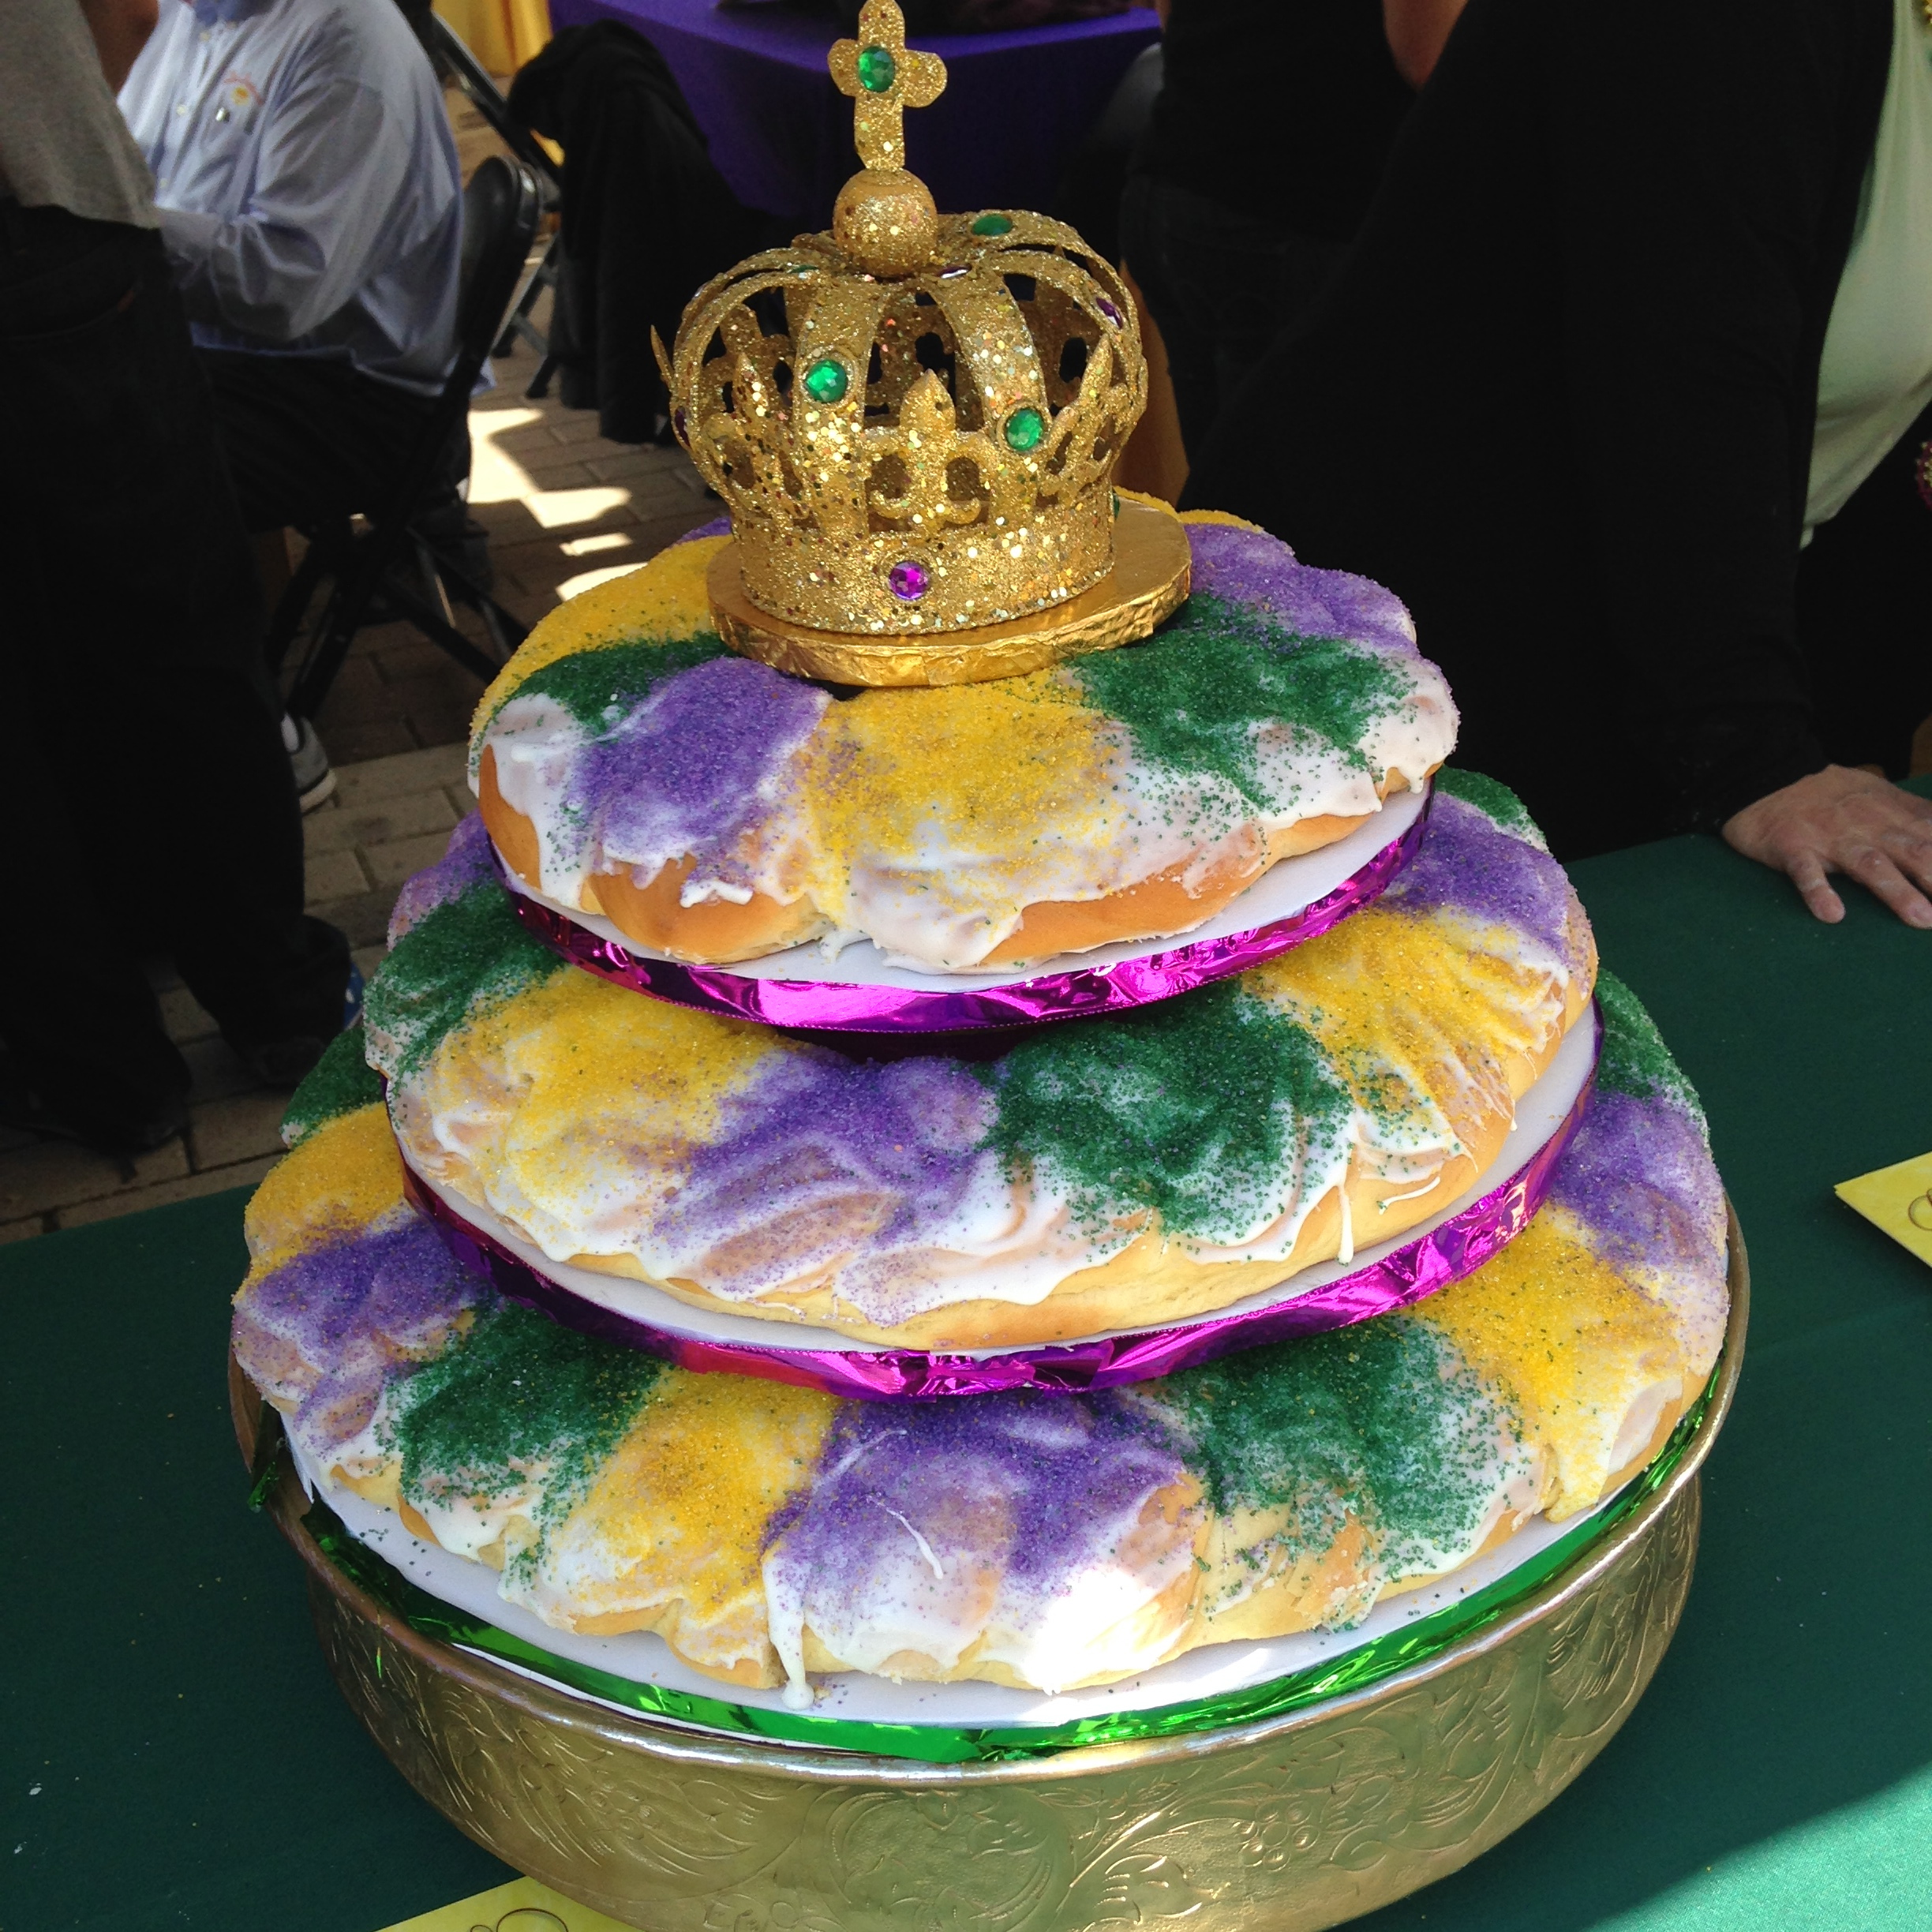 Where Can I Find A King Cake